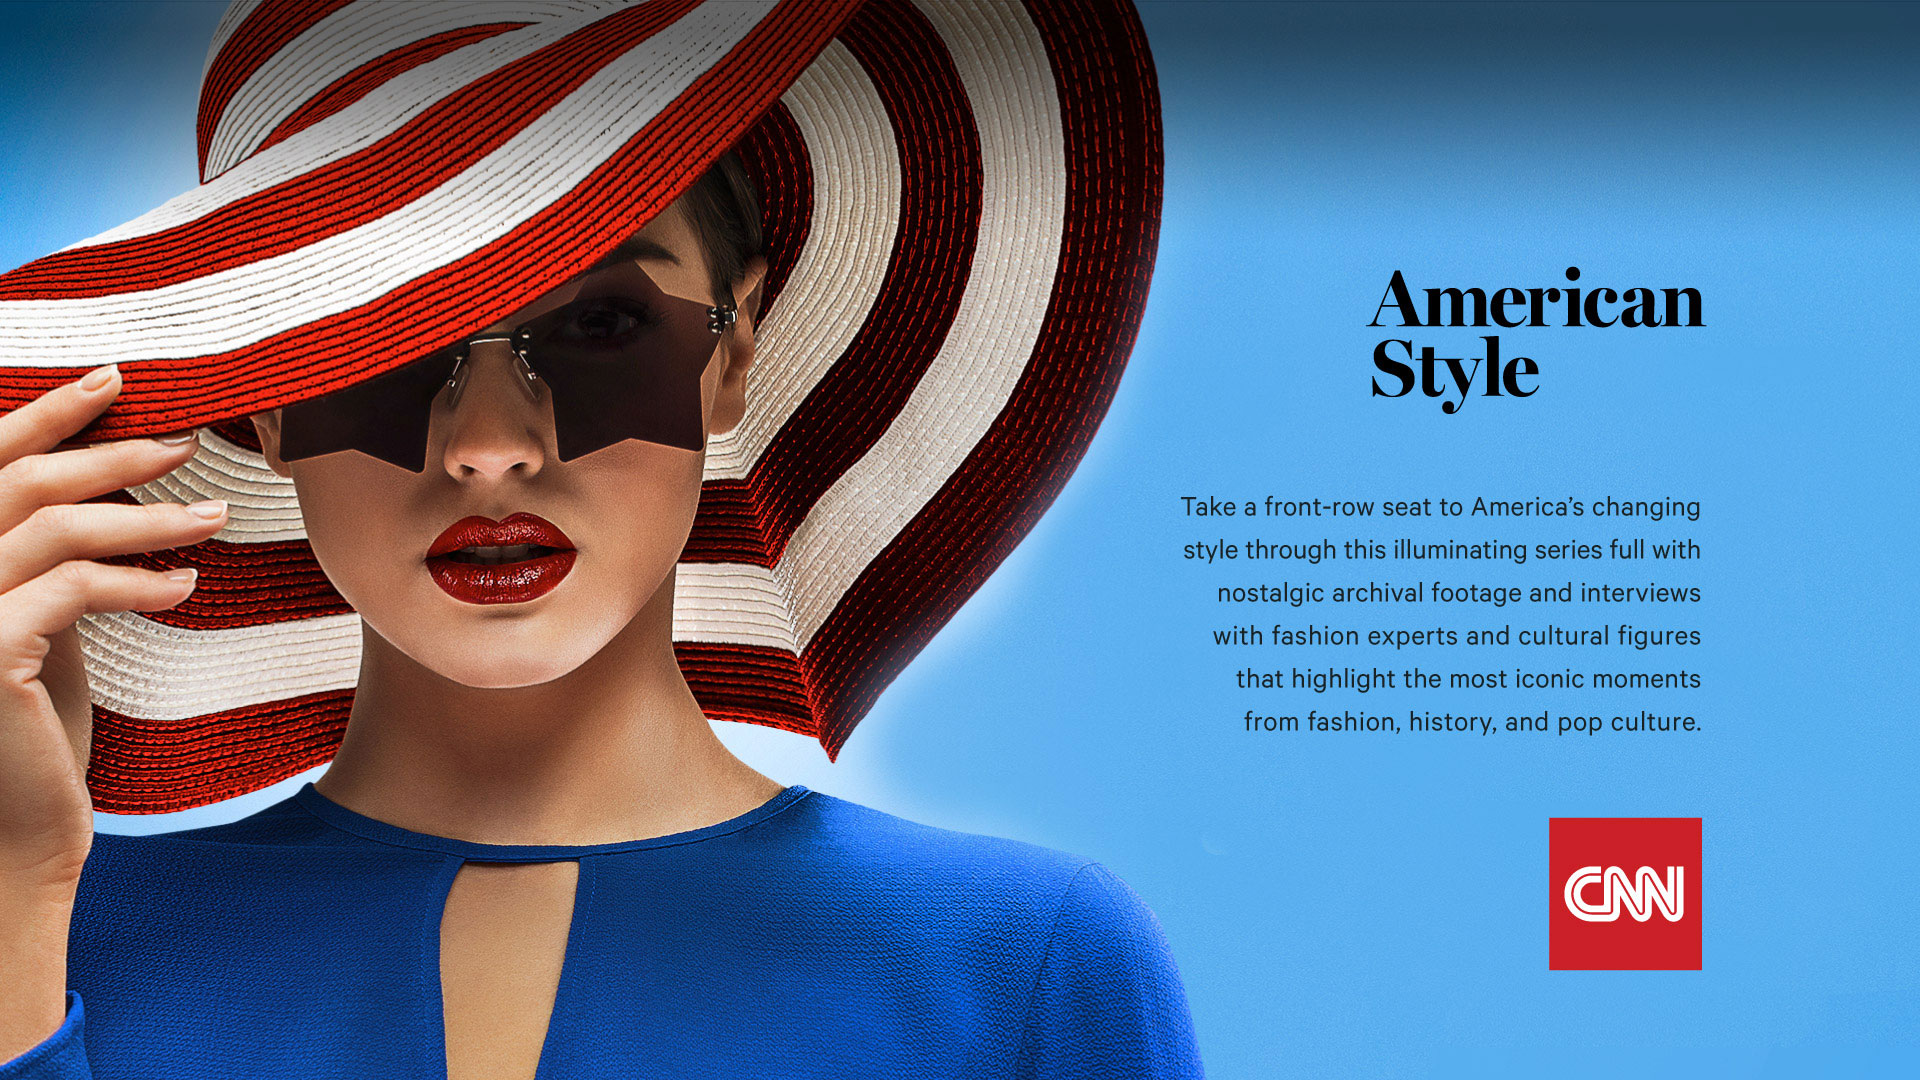 woman-wearing-and-holding-rim-of-red-and-white-striped-hat-and-star-sunglasses-red-lipstick-blue-top-american-style-logo-cnn-logo